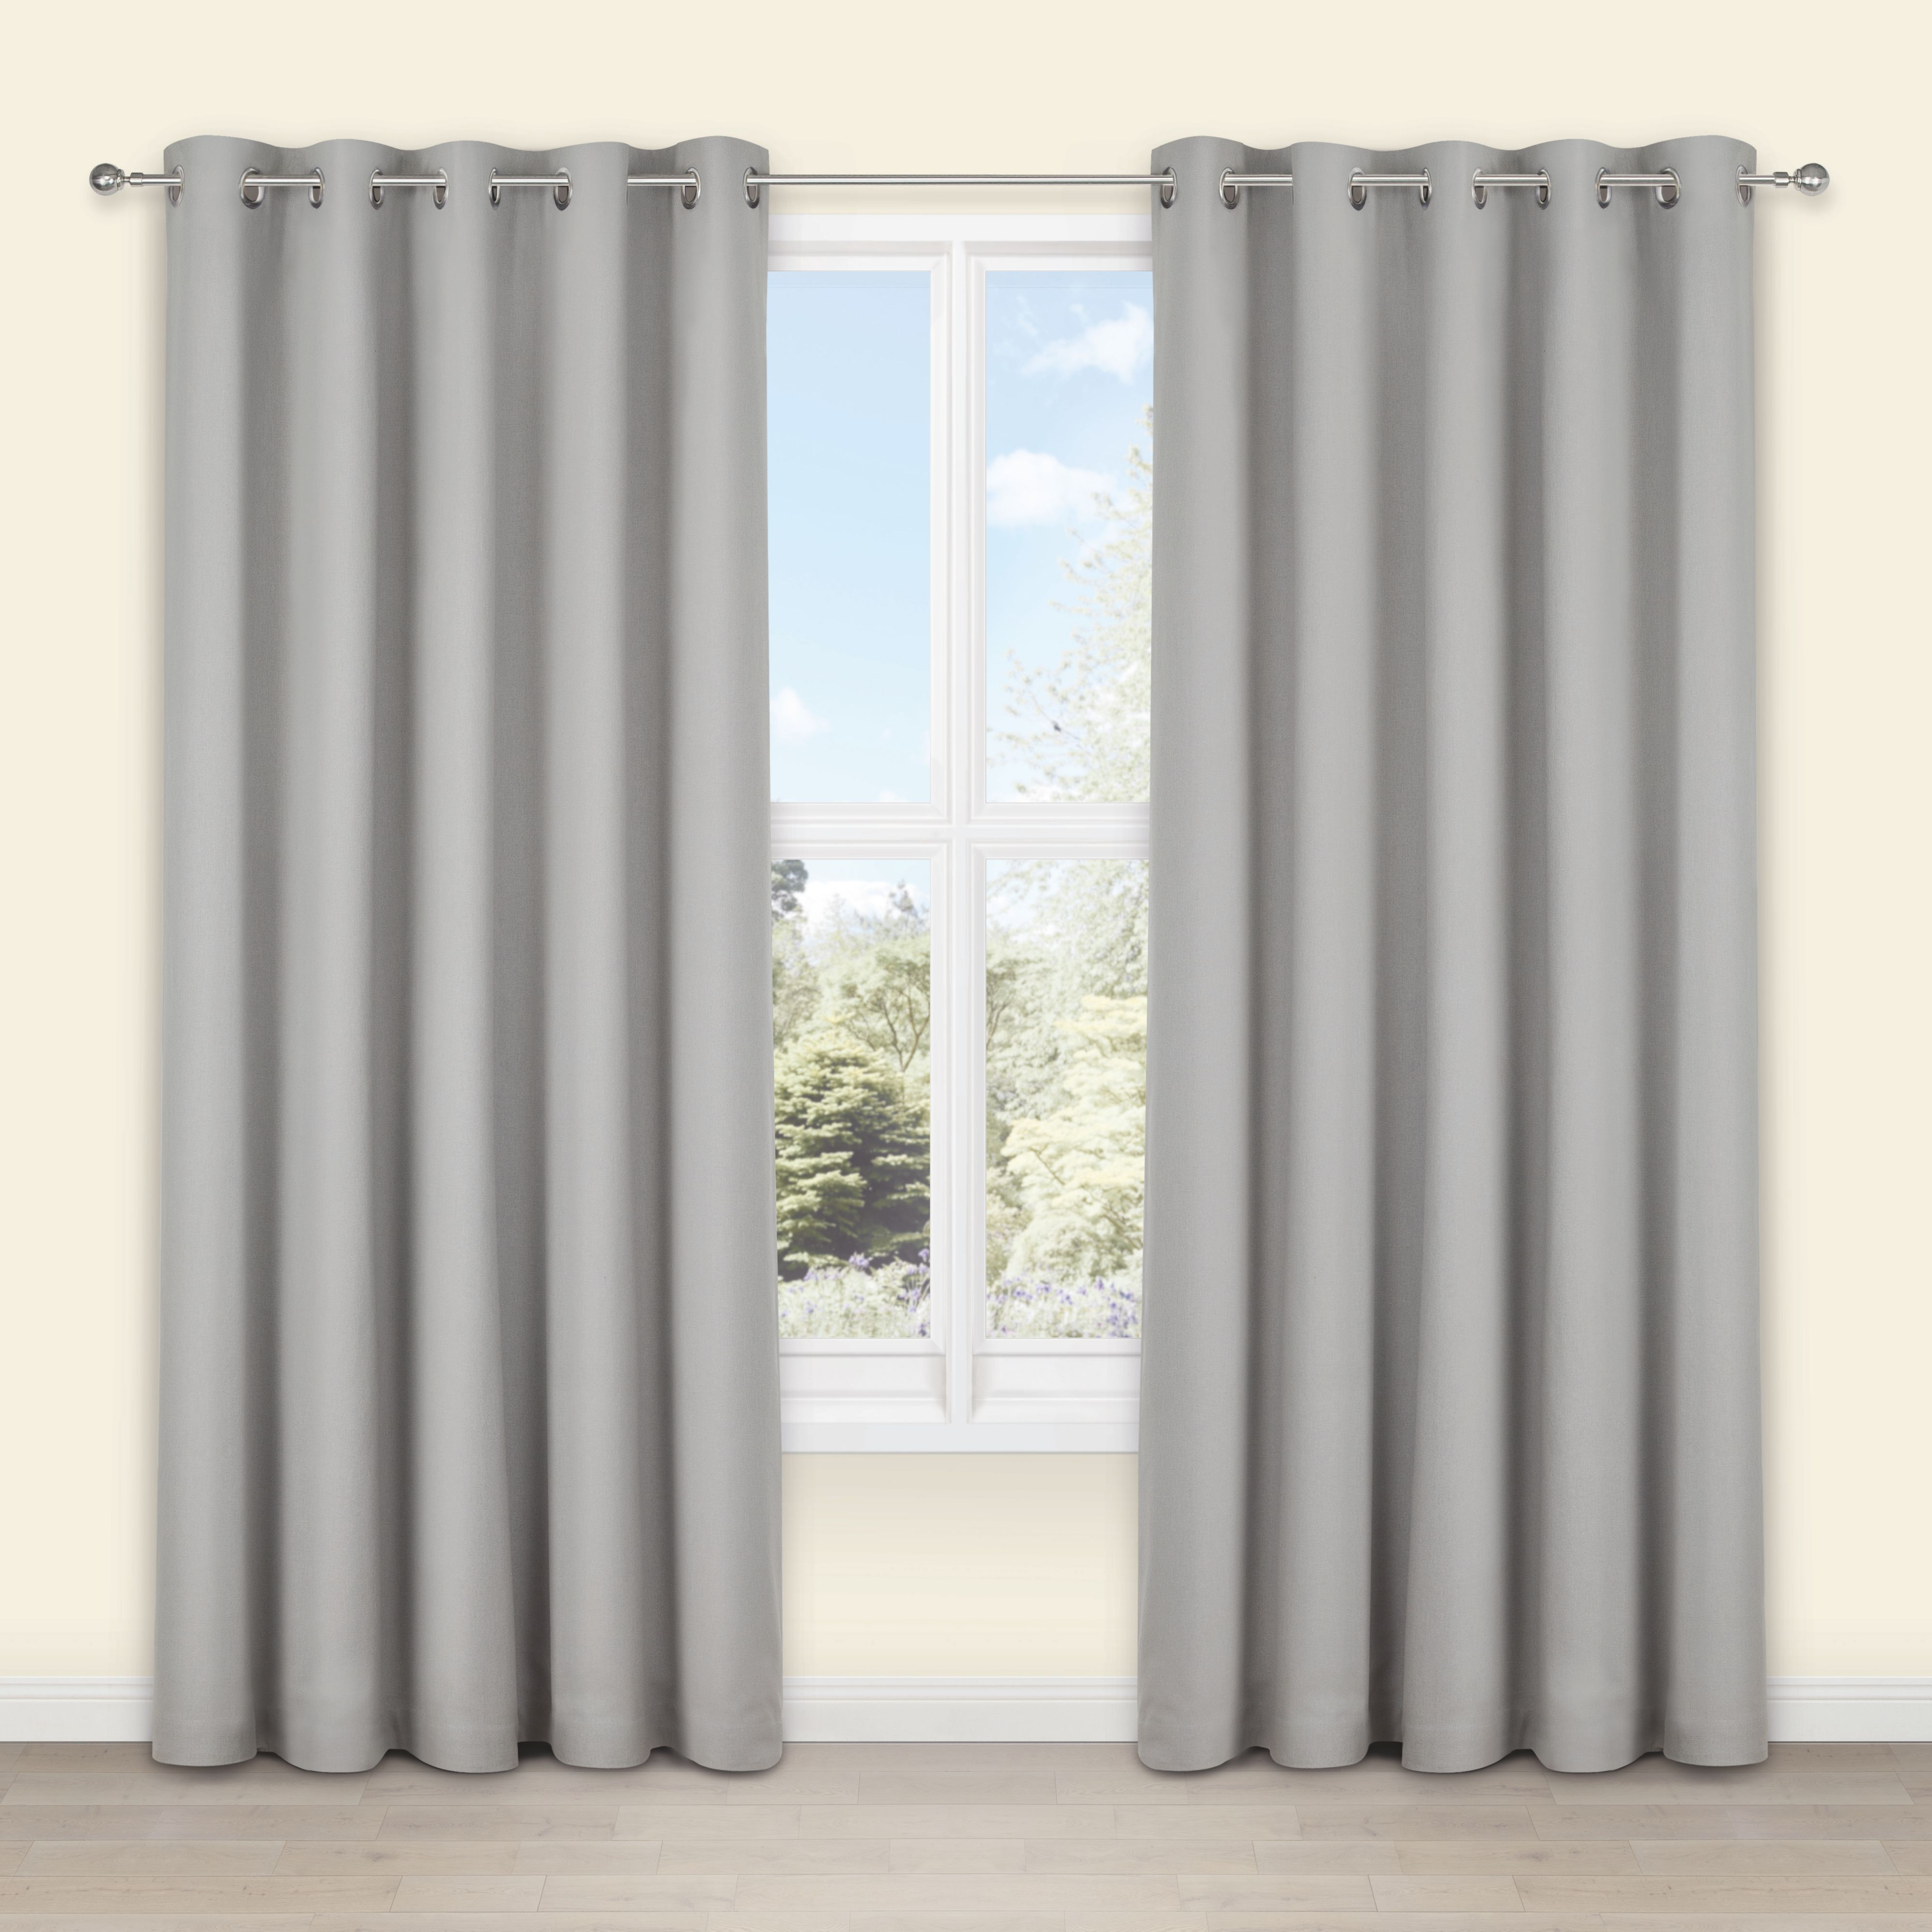 Eyelet Bedroom Curtains Salla Concrete Plain Woven Eyelet Lined Curtains W 117cm L 137cm